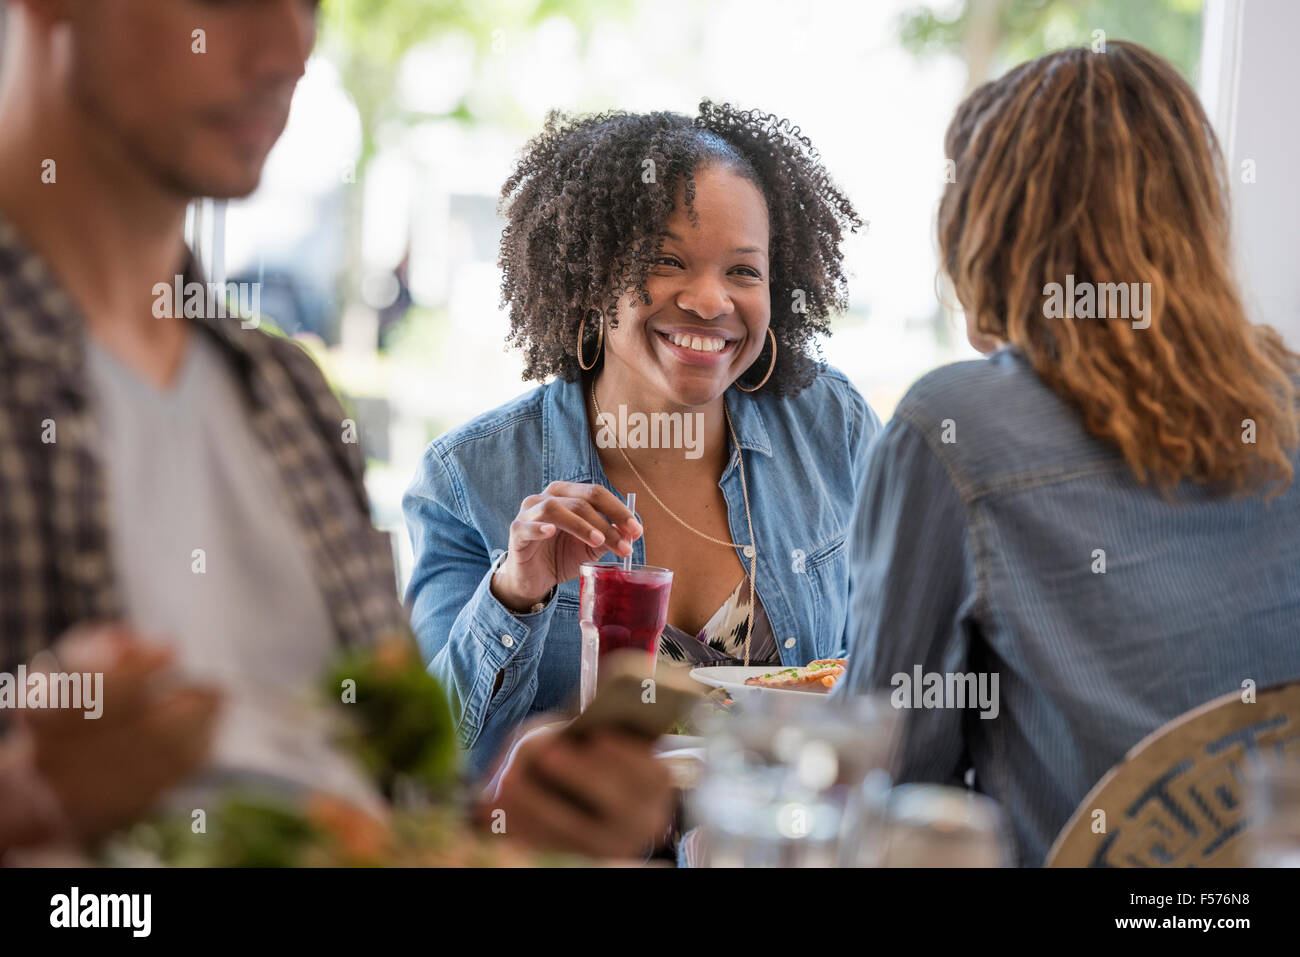 Three people seated at tables at a coffee shop. Two women laughing. - Stock Image